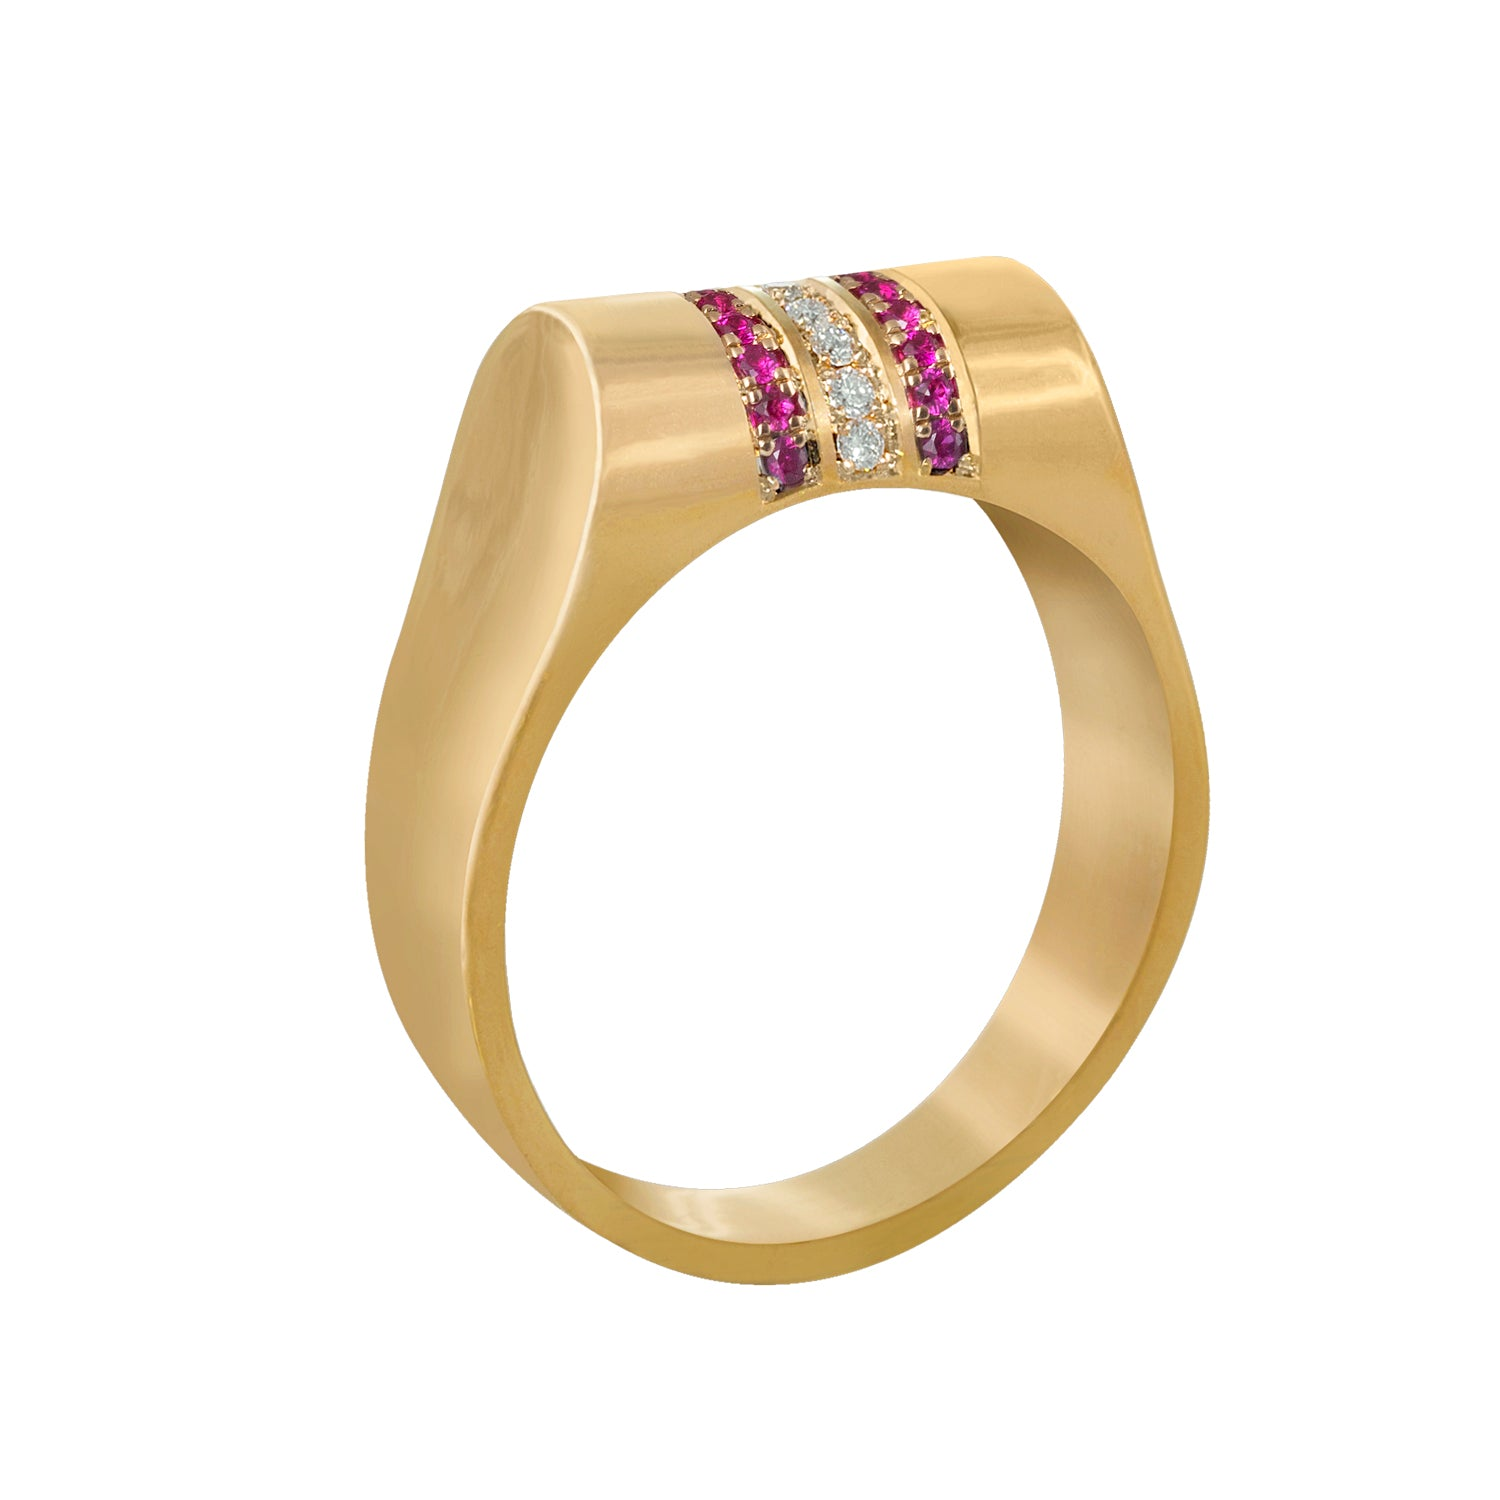 Edge Only Ruby and Diamond High Top Ring in 14ct gold